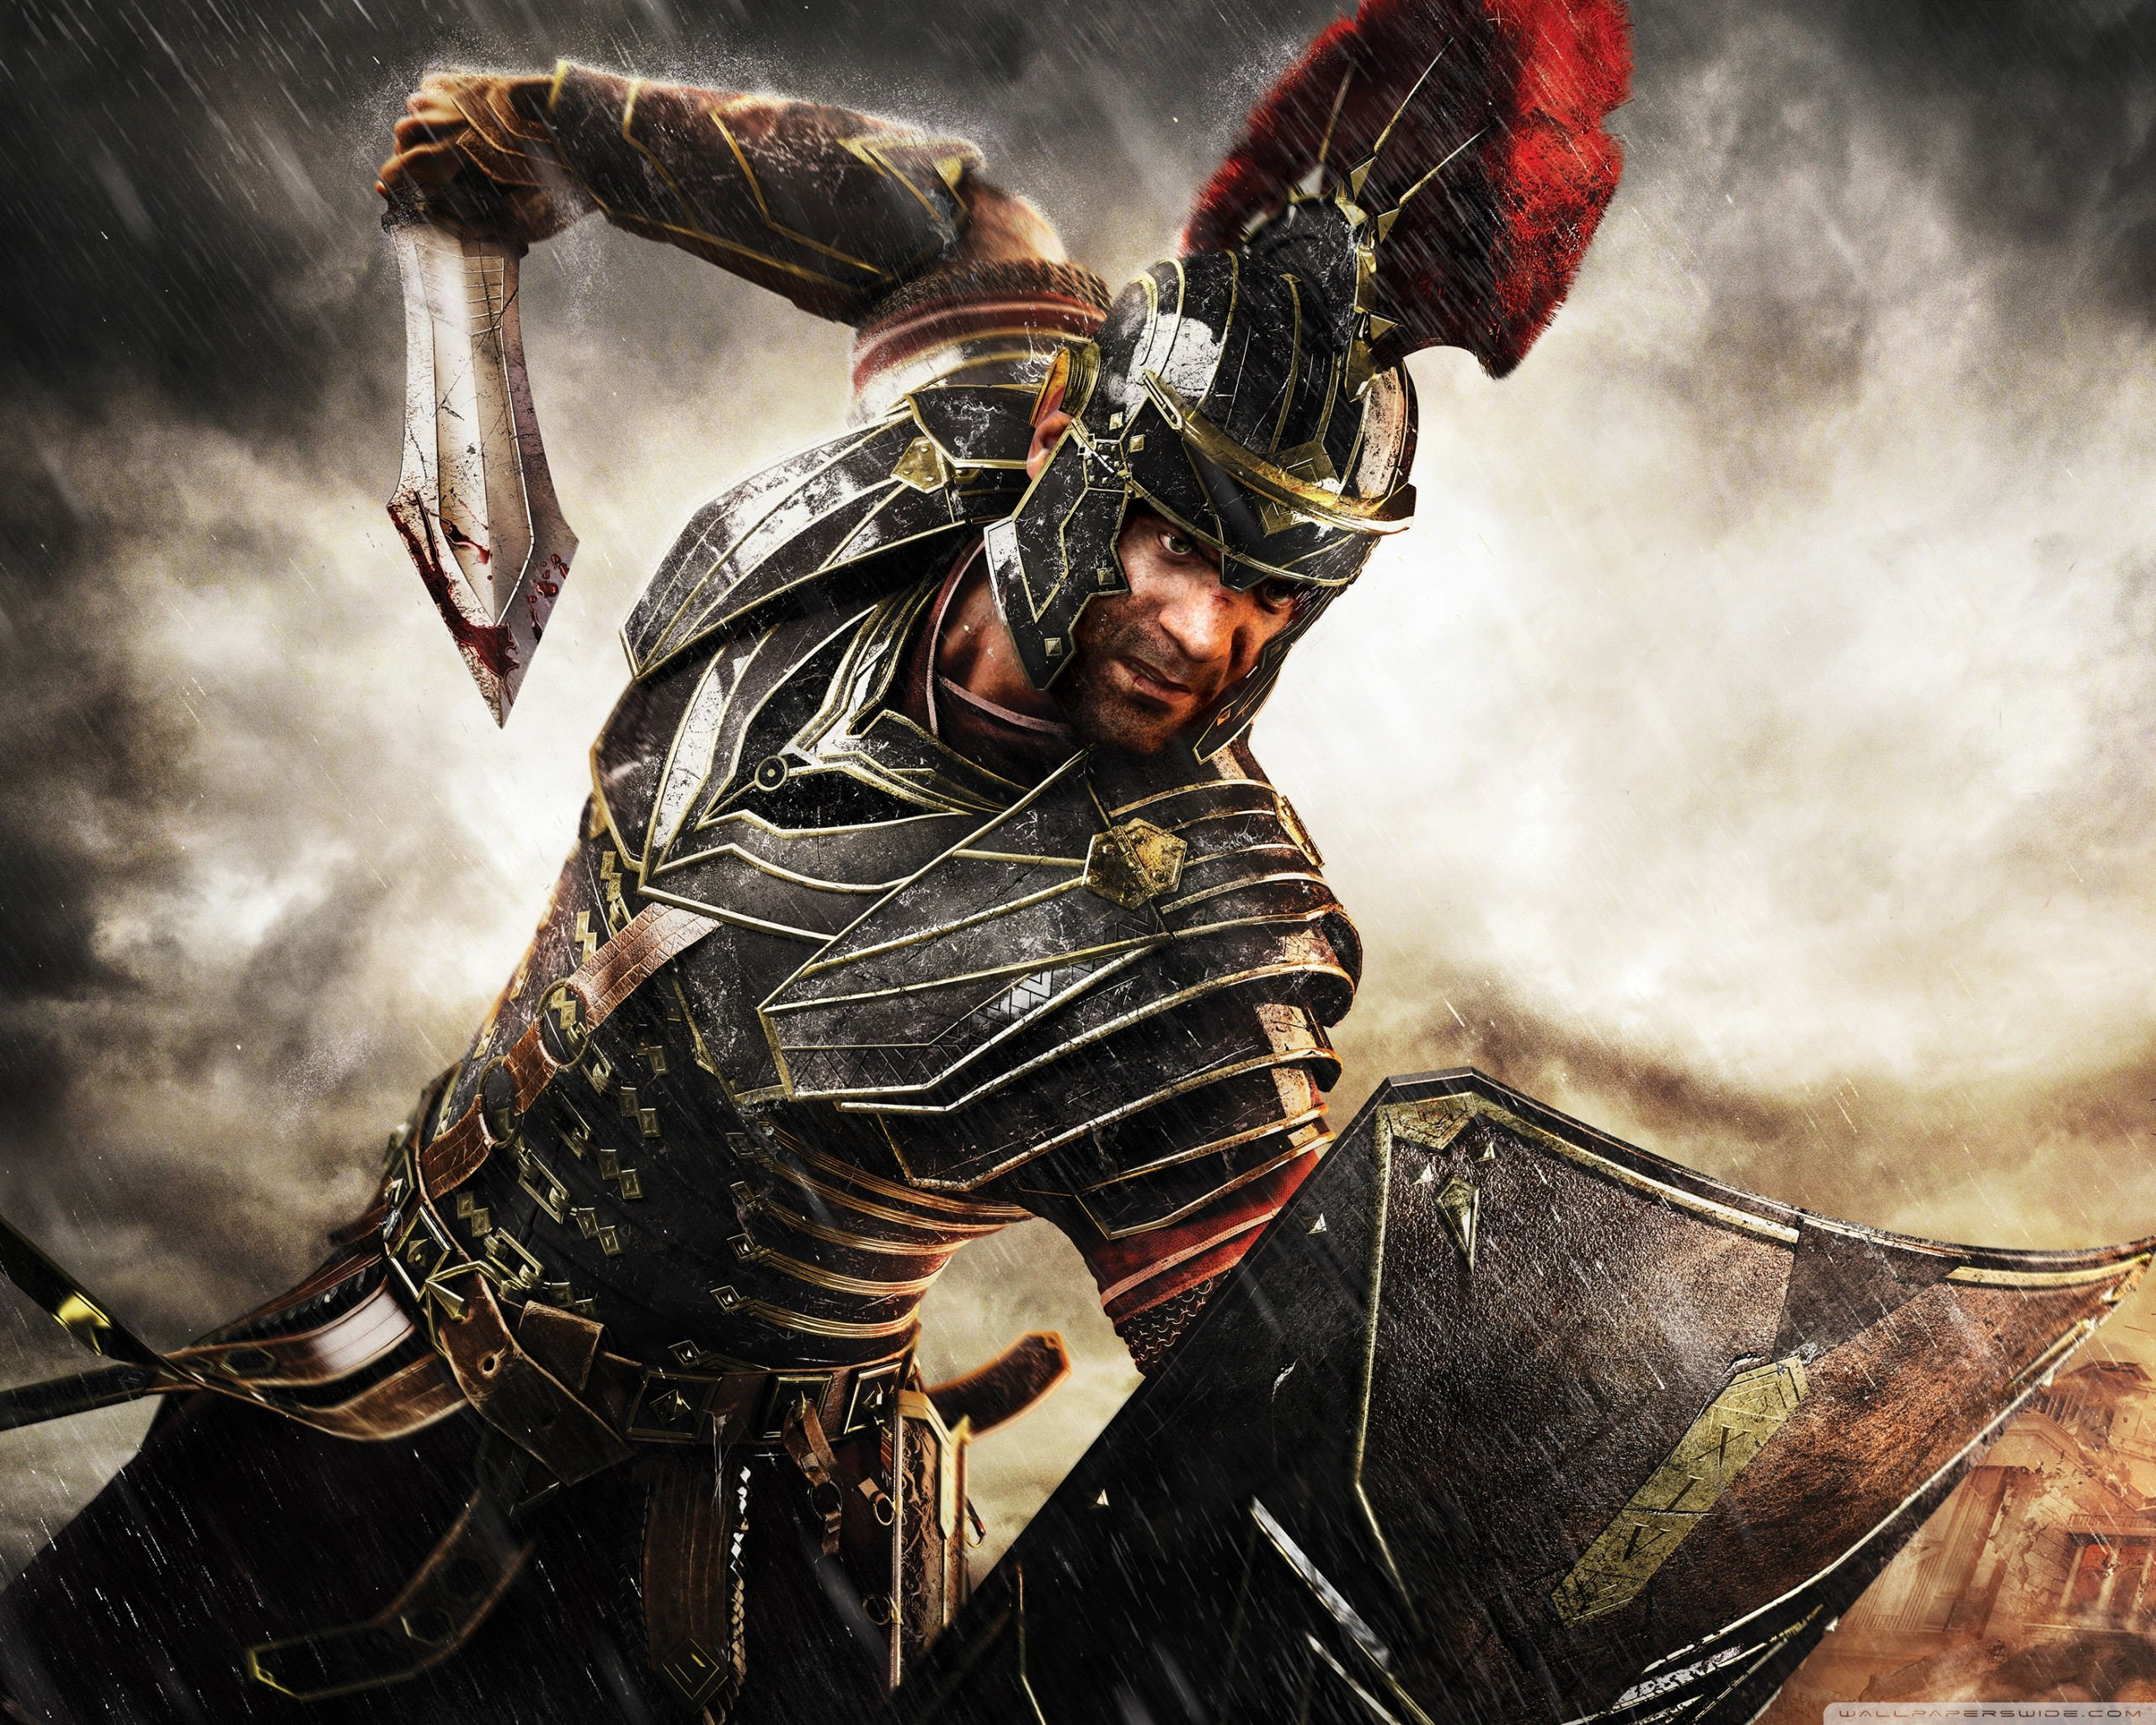 Res: 2560x2048, 231485204 Roman Soldier Wallpapers » Roman Soldier Backgrounds